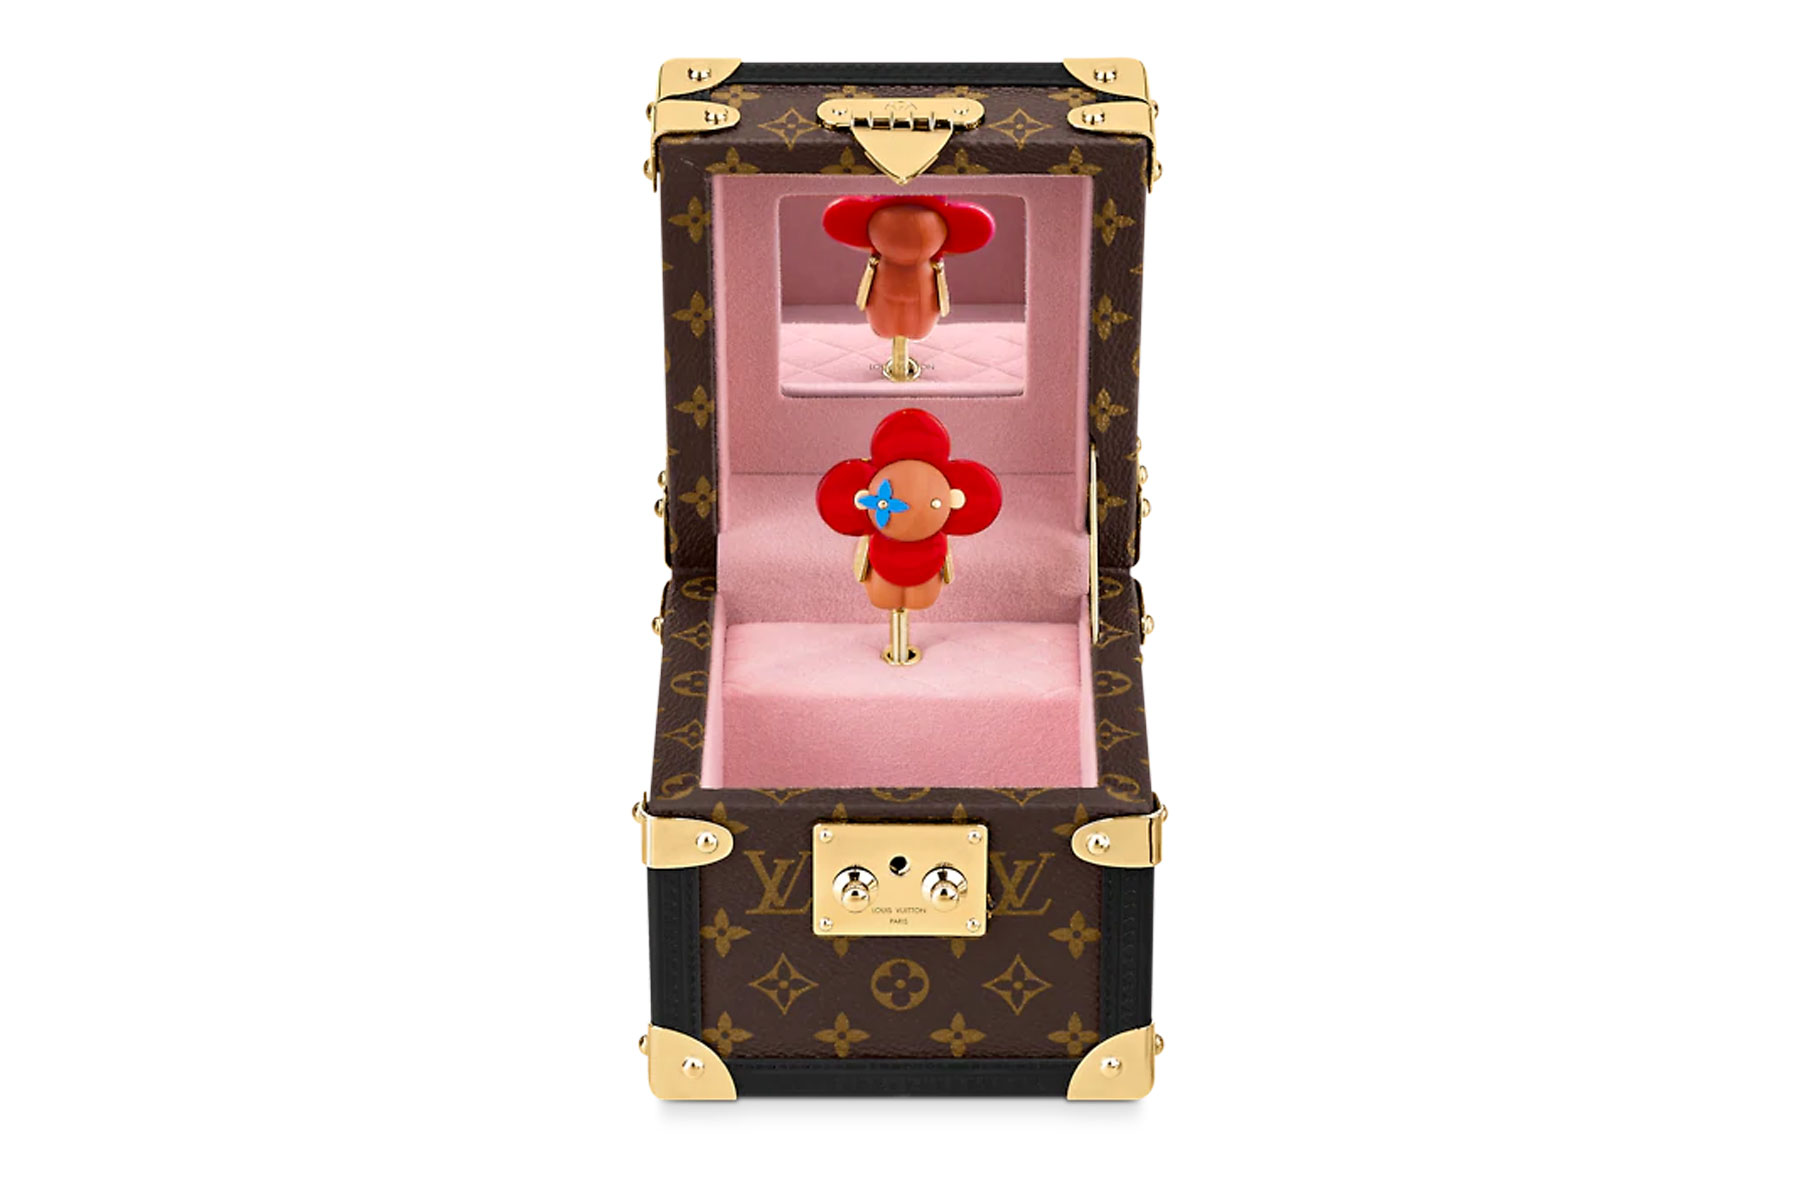 Brown and gold music box with pink interior